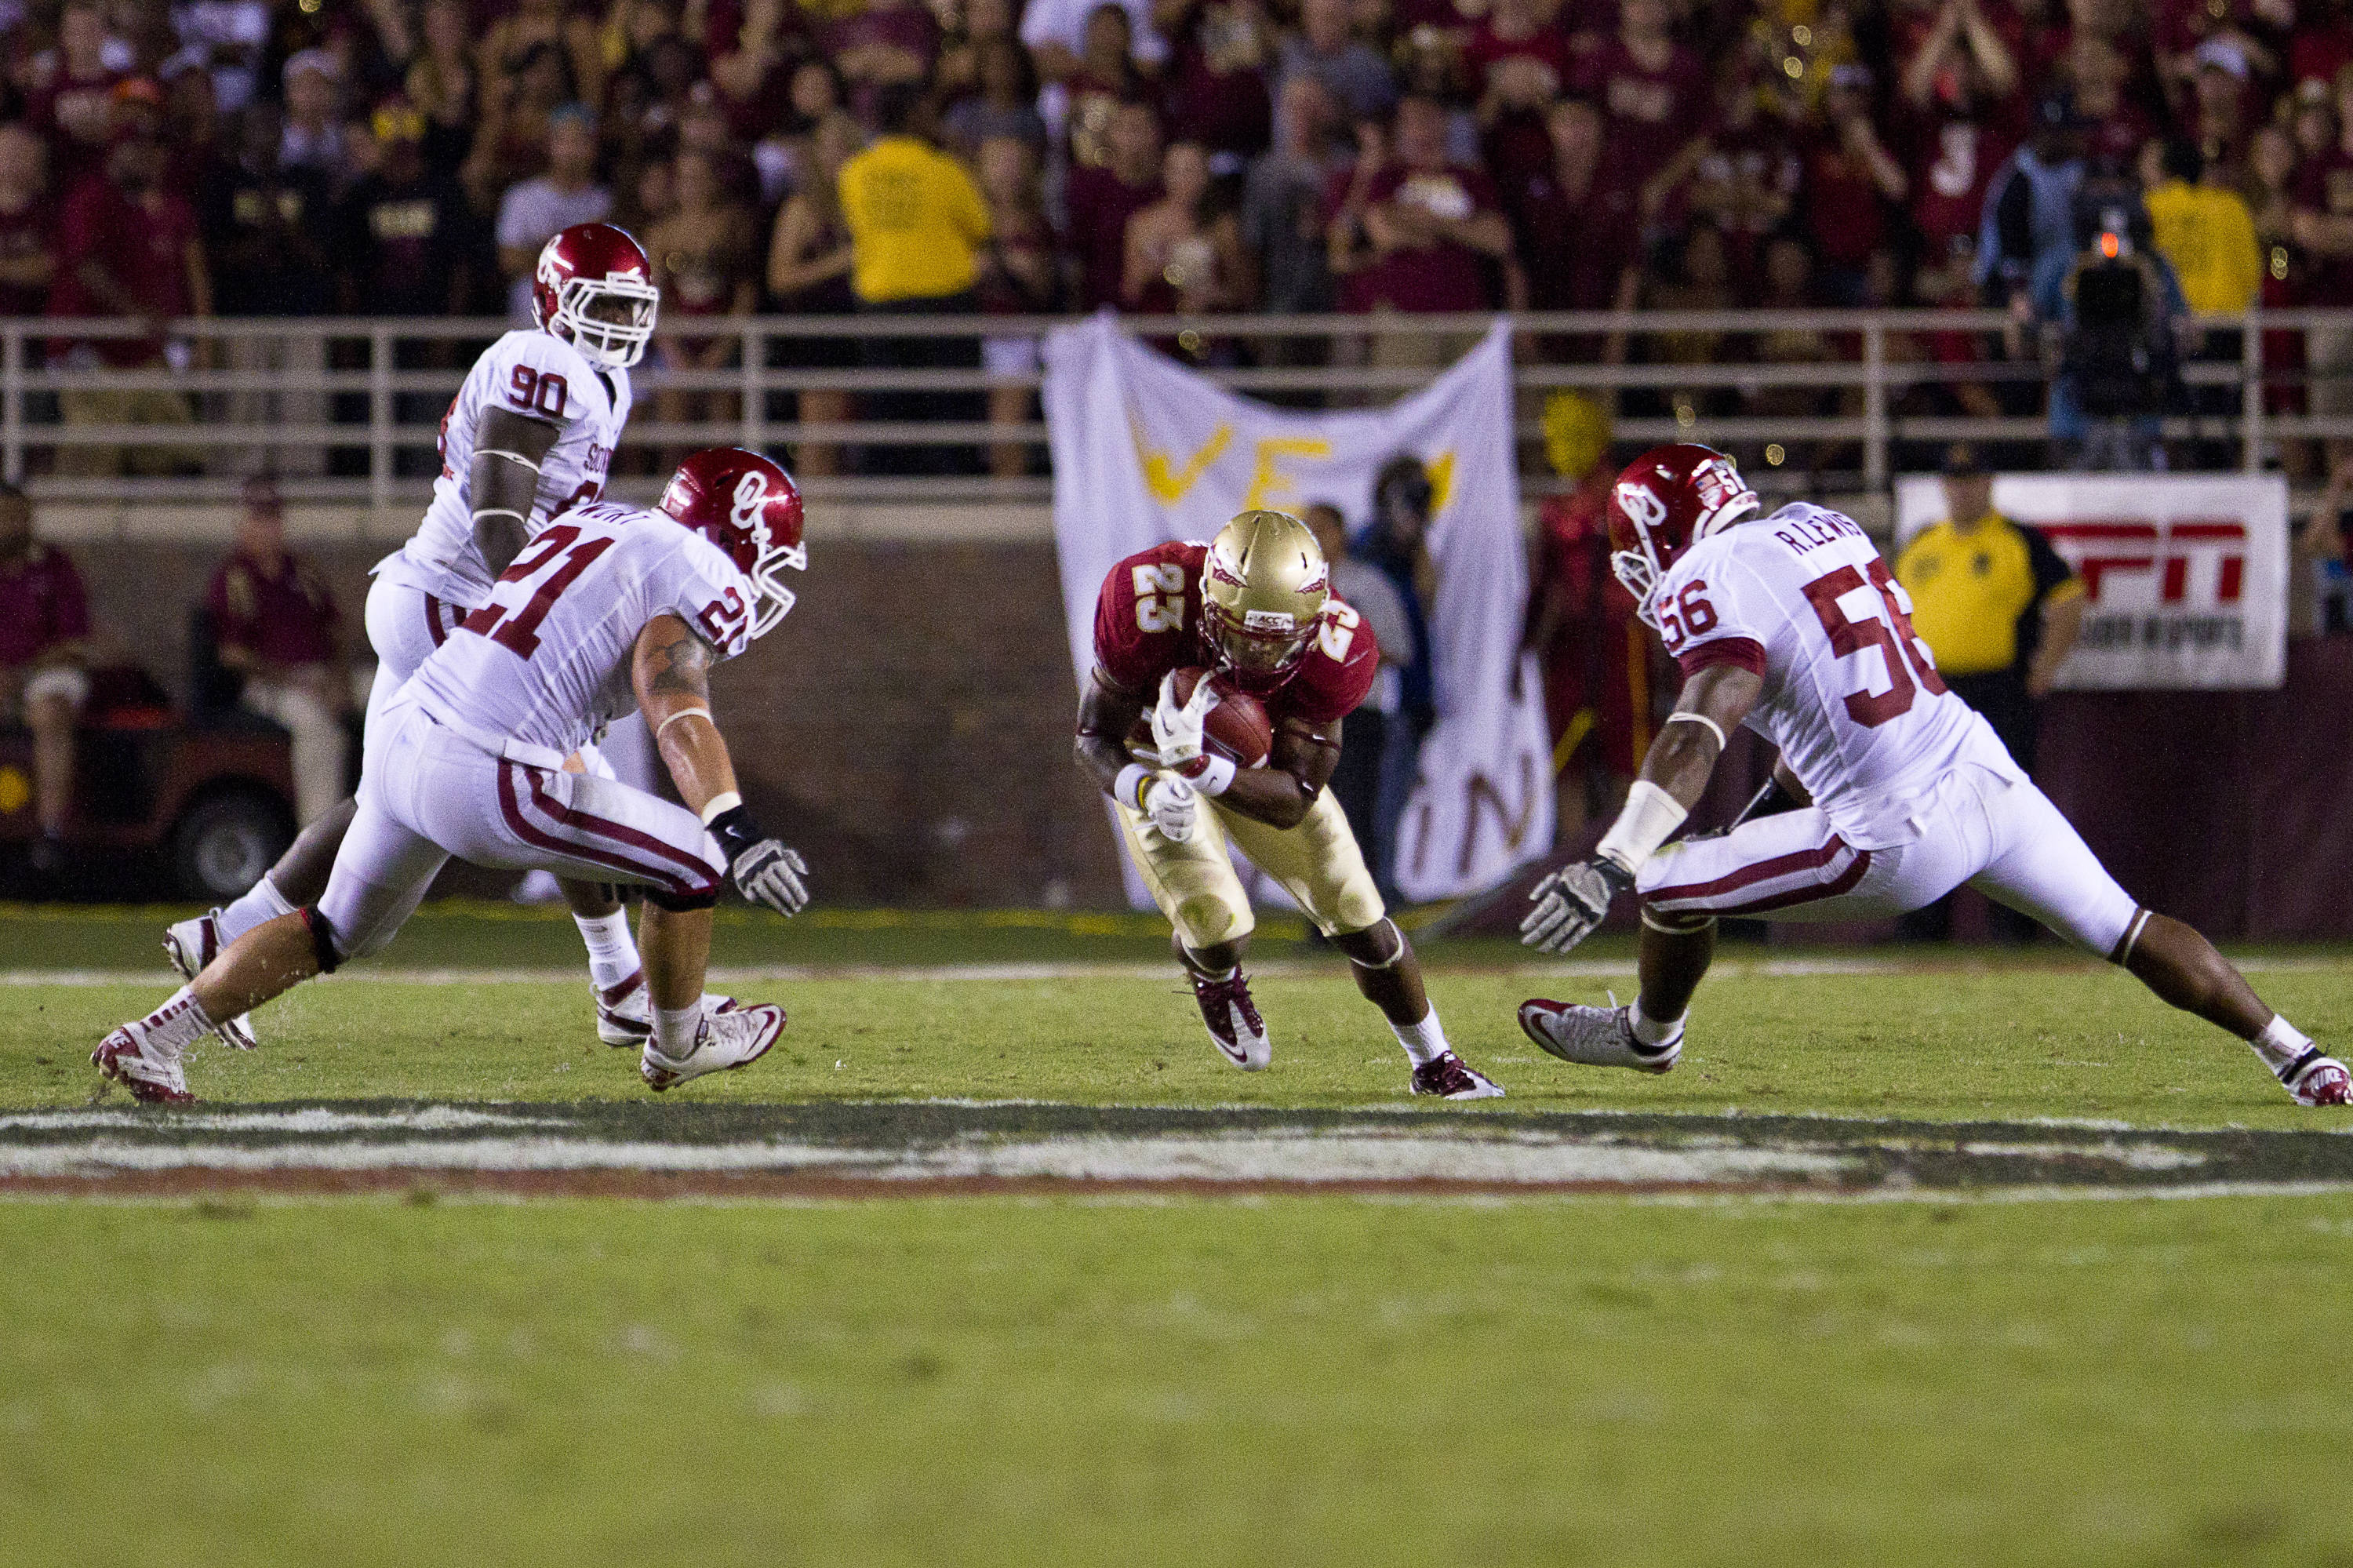 Chris Thompson (23) carries the ball between two defenders during the game against Oklahoma on September 17, 2011.